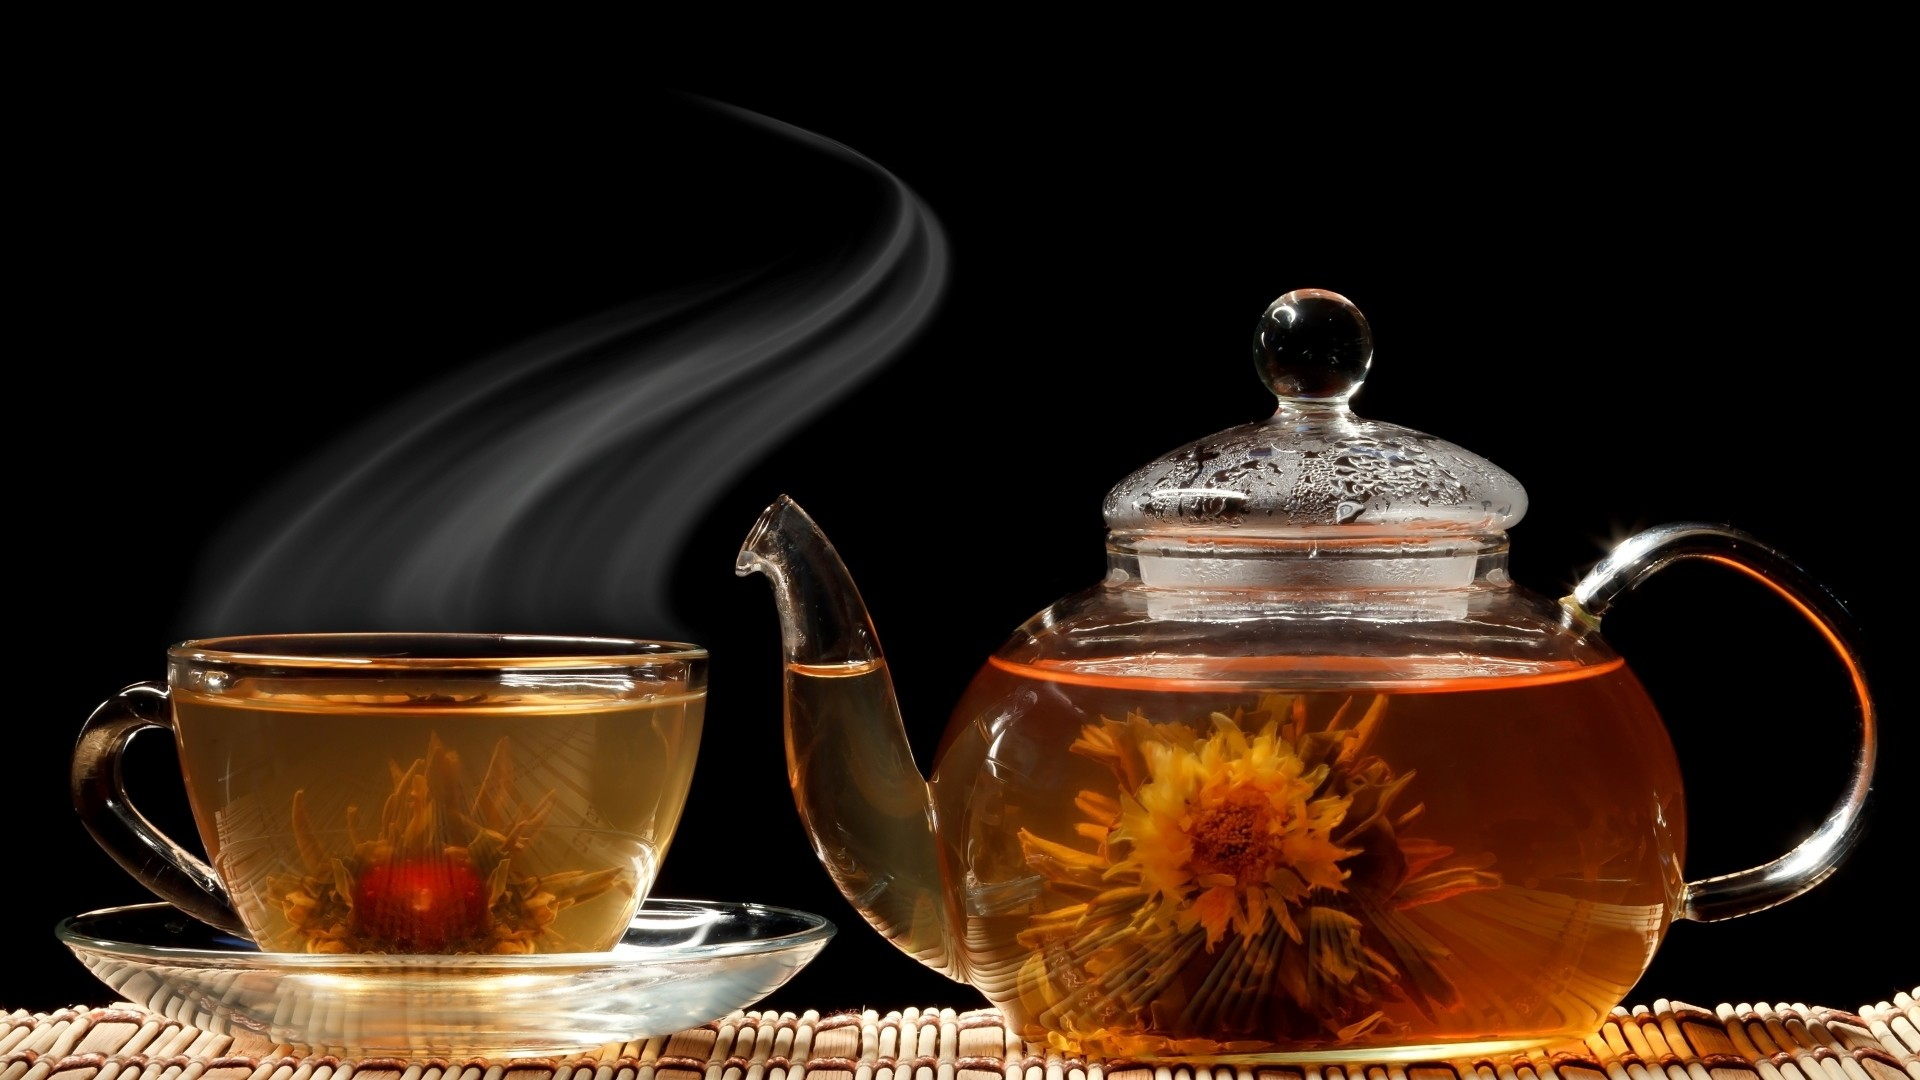 1920x1080  Wallpaper tea, cup, teapot, flowers, aroma